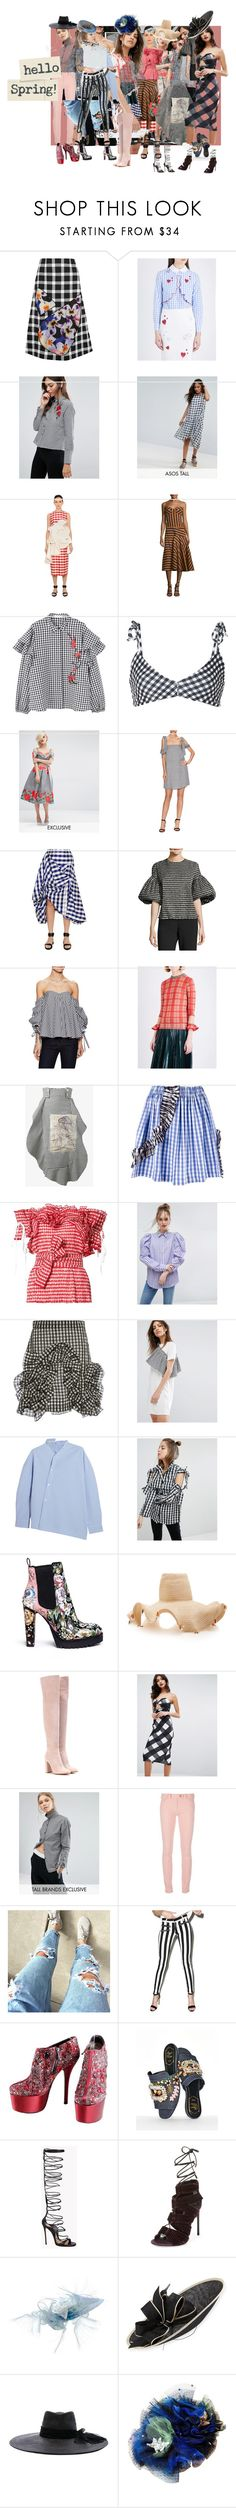 """""""Gingham Ghosts"""" by leotajane ❤ liked on Polyvore featuring Christopher Kane, Trilogy, VIVETTA, Influence, ASOS, Patricia Padrón, Victoria Beckham, MANGO, Camp Cove and Horrockses"""